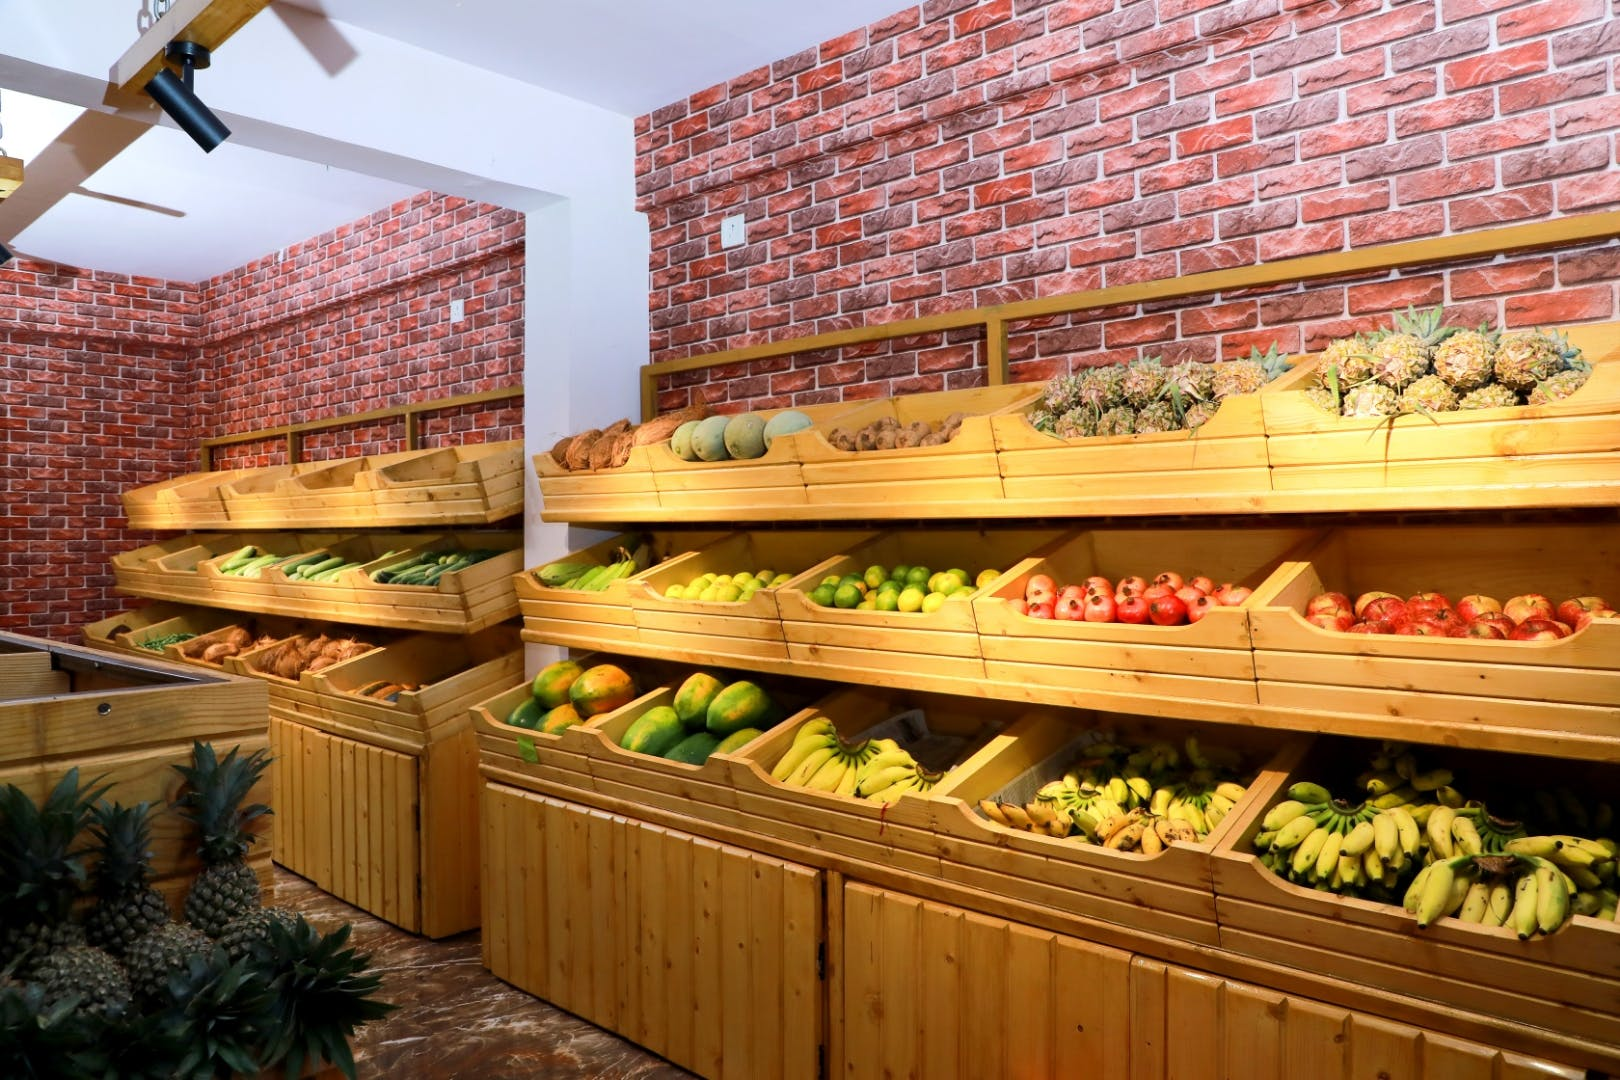 Whole food,Wall,Grocery store,Wood,Supermarket,Building,Local food,Hardwood,Retail,Interior design